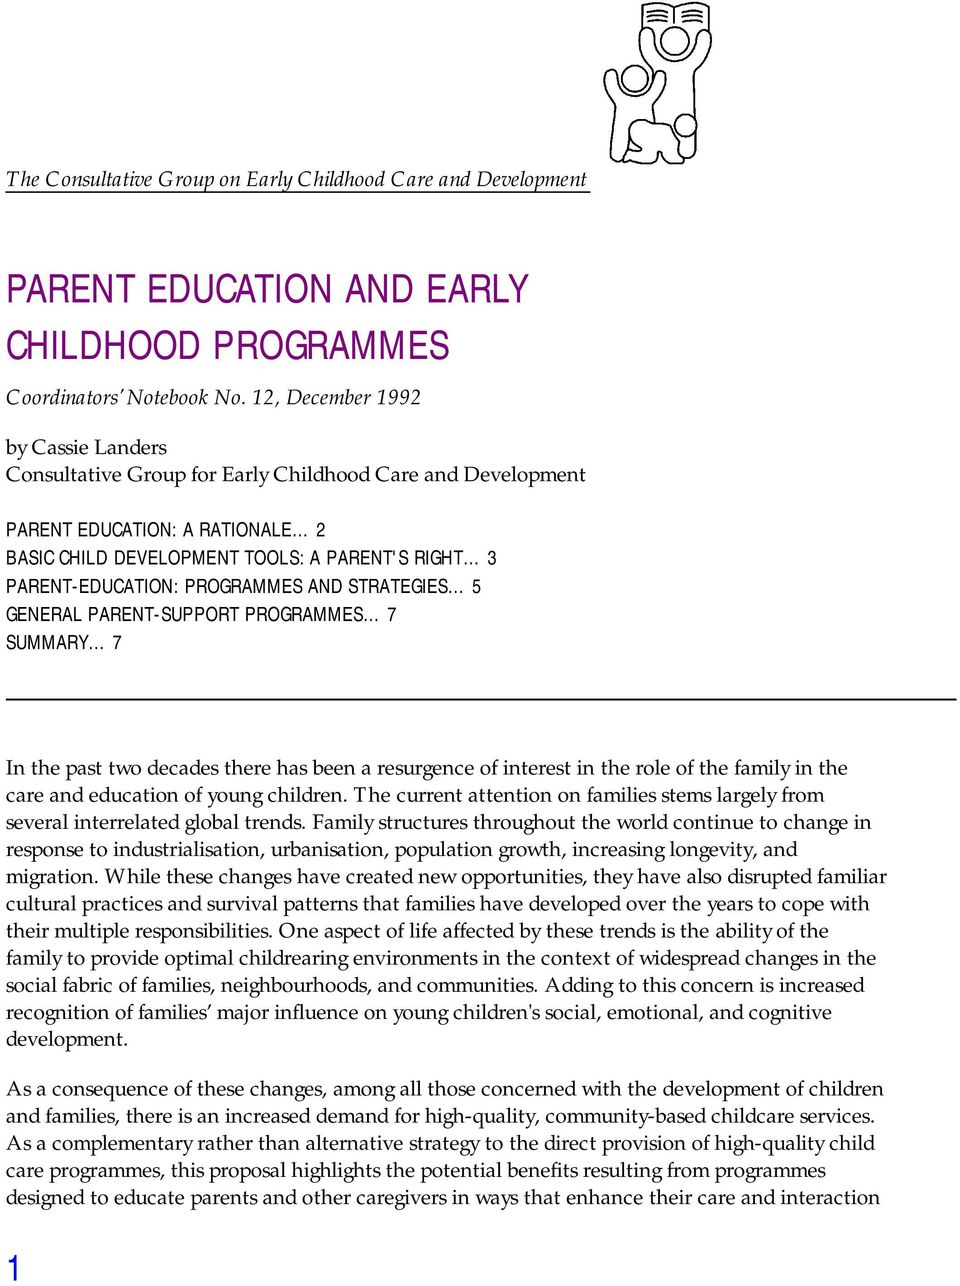 PROGRAMMES AND STRATEGIES 5 GENERAL PARENT-SUPPORT PROGRAMMES 7 SUMMARY 7 In the past two decades there has been a resurgence of interest in the role of the family in the care and education of young